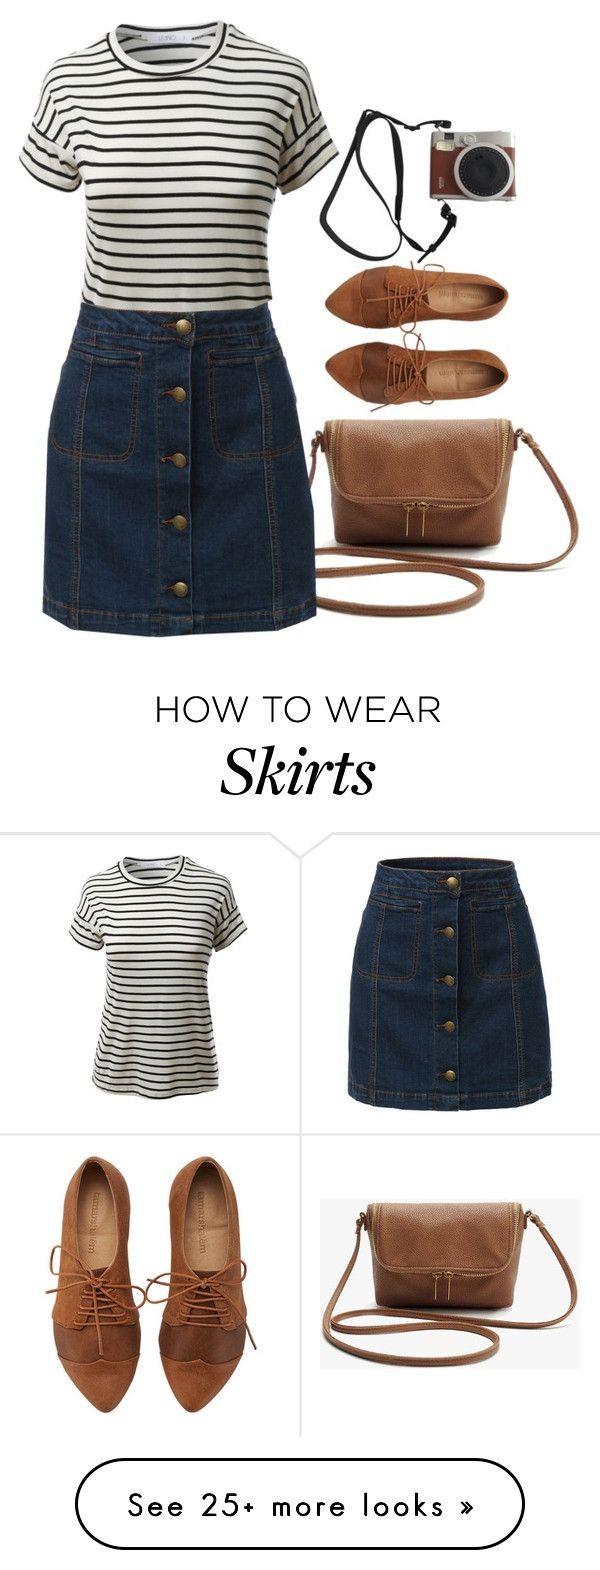 """""""Vintage Striped Tee & Denim Skirt"""" by le3noclothing on Polyvore featuring Fuji, LE3NO and vintage"""